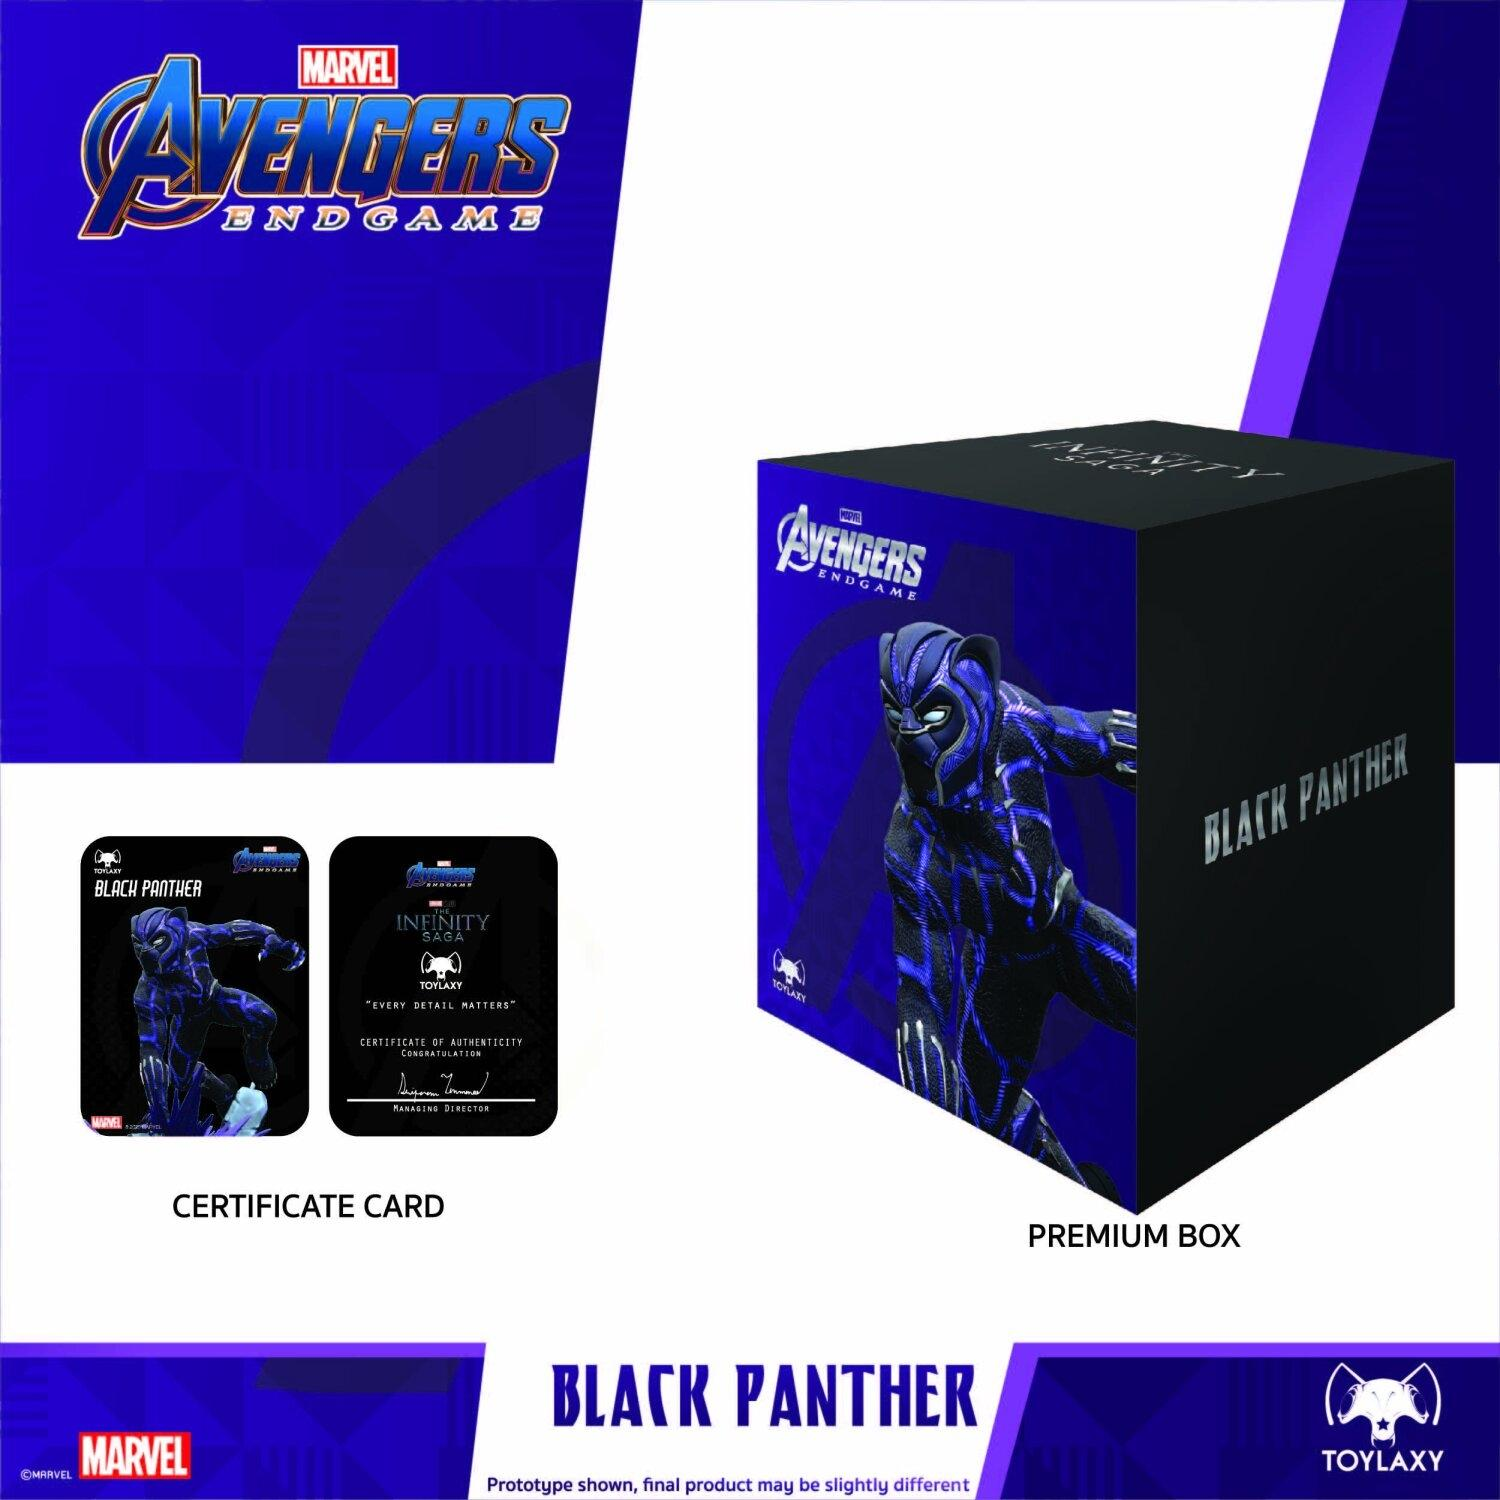 Marvel Avengers Endgame Premium PVC Black Panther Official Figure Toy packaging